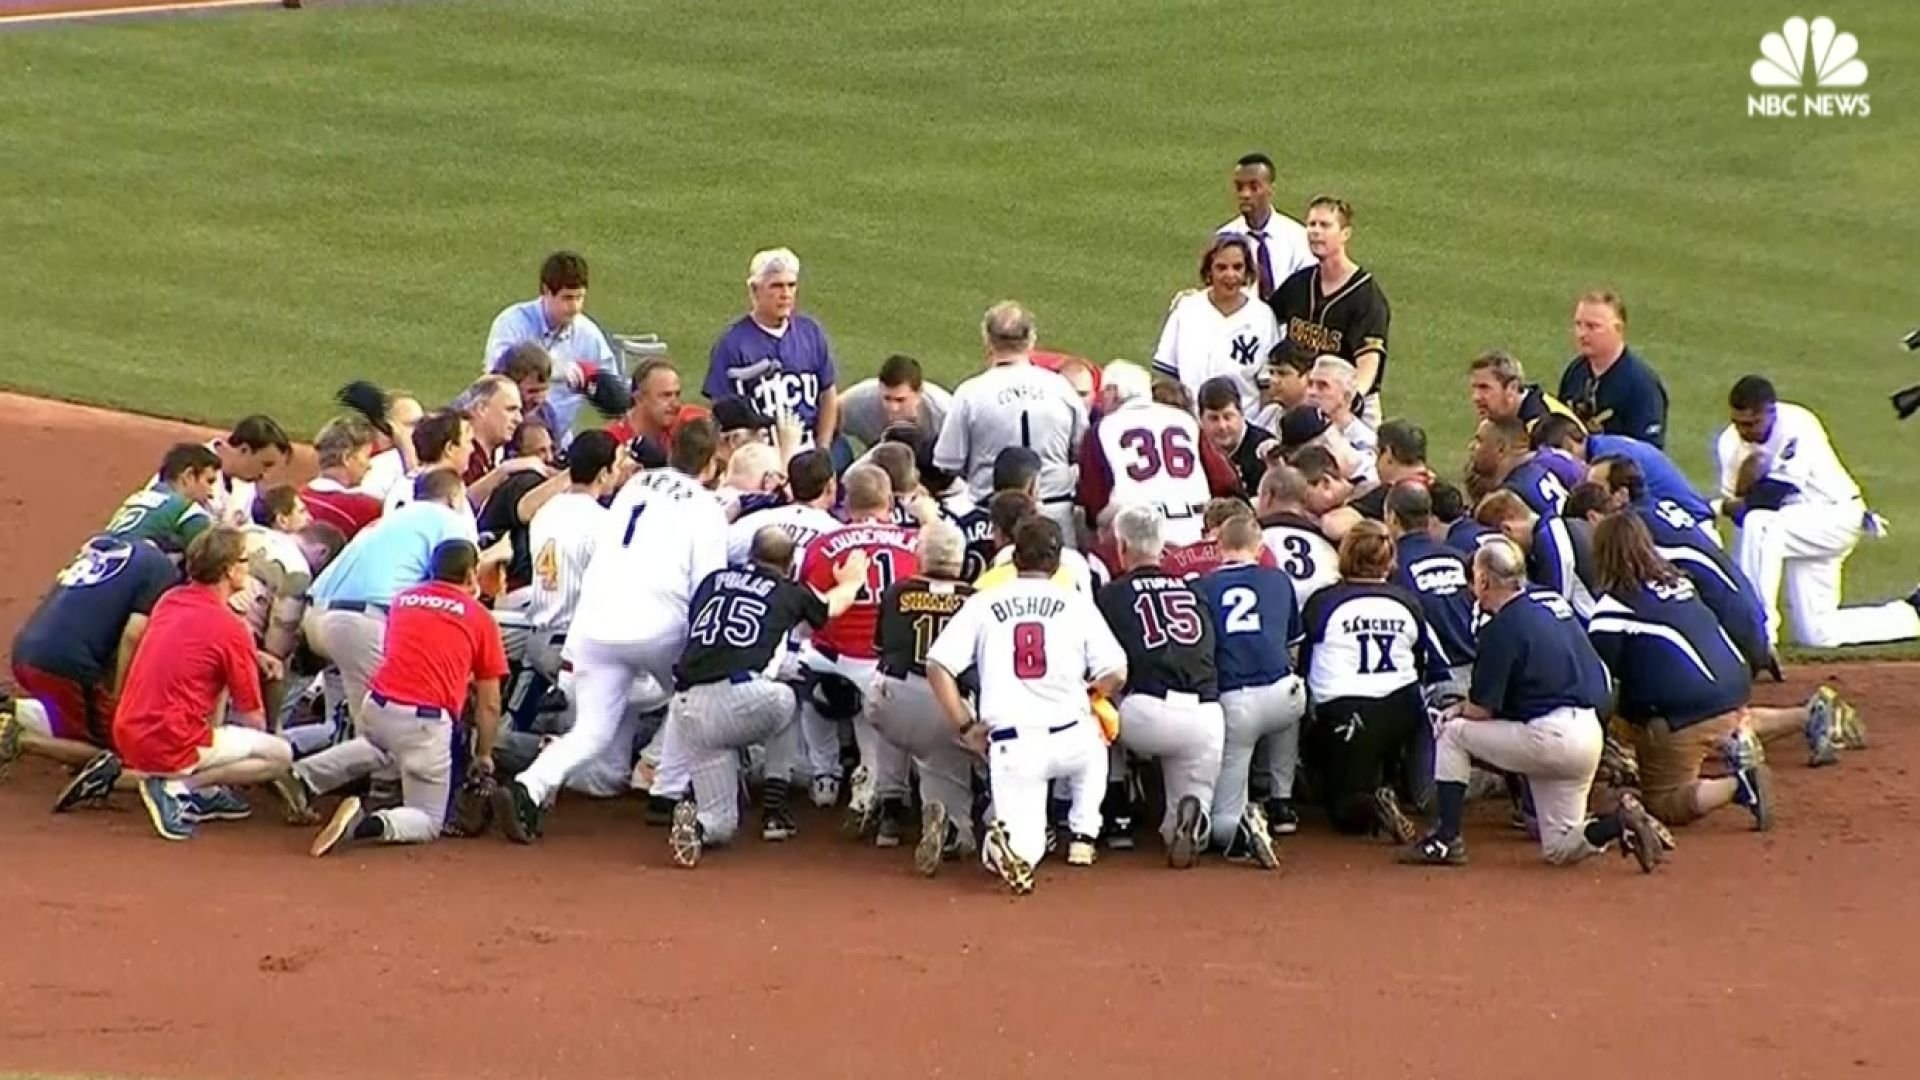 Congressional Baseball game played in wake of shooting during practice.